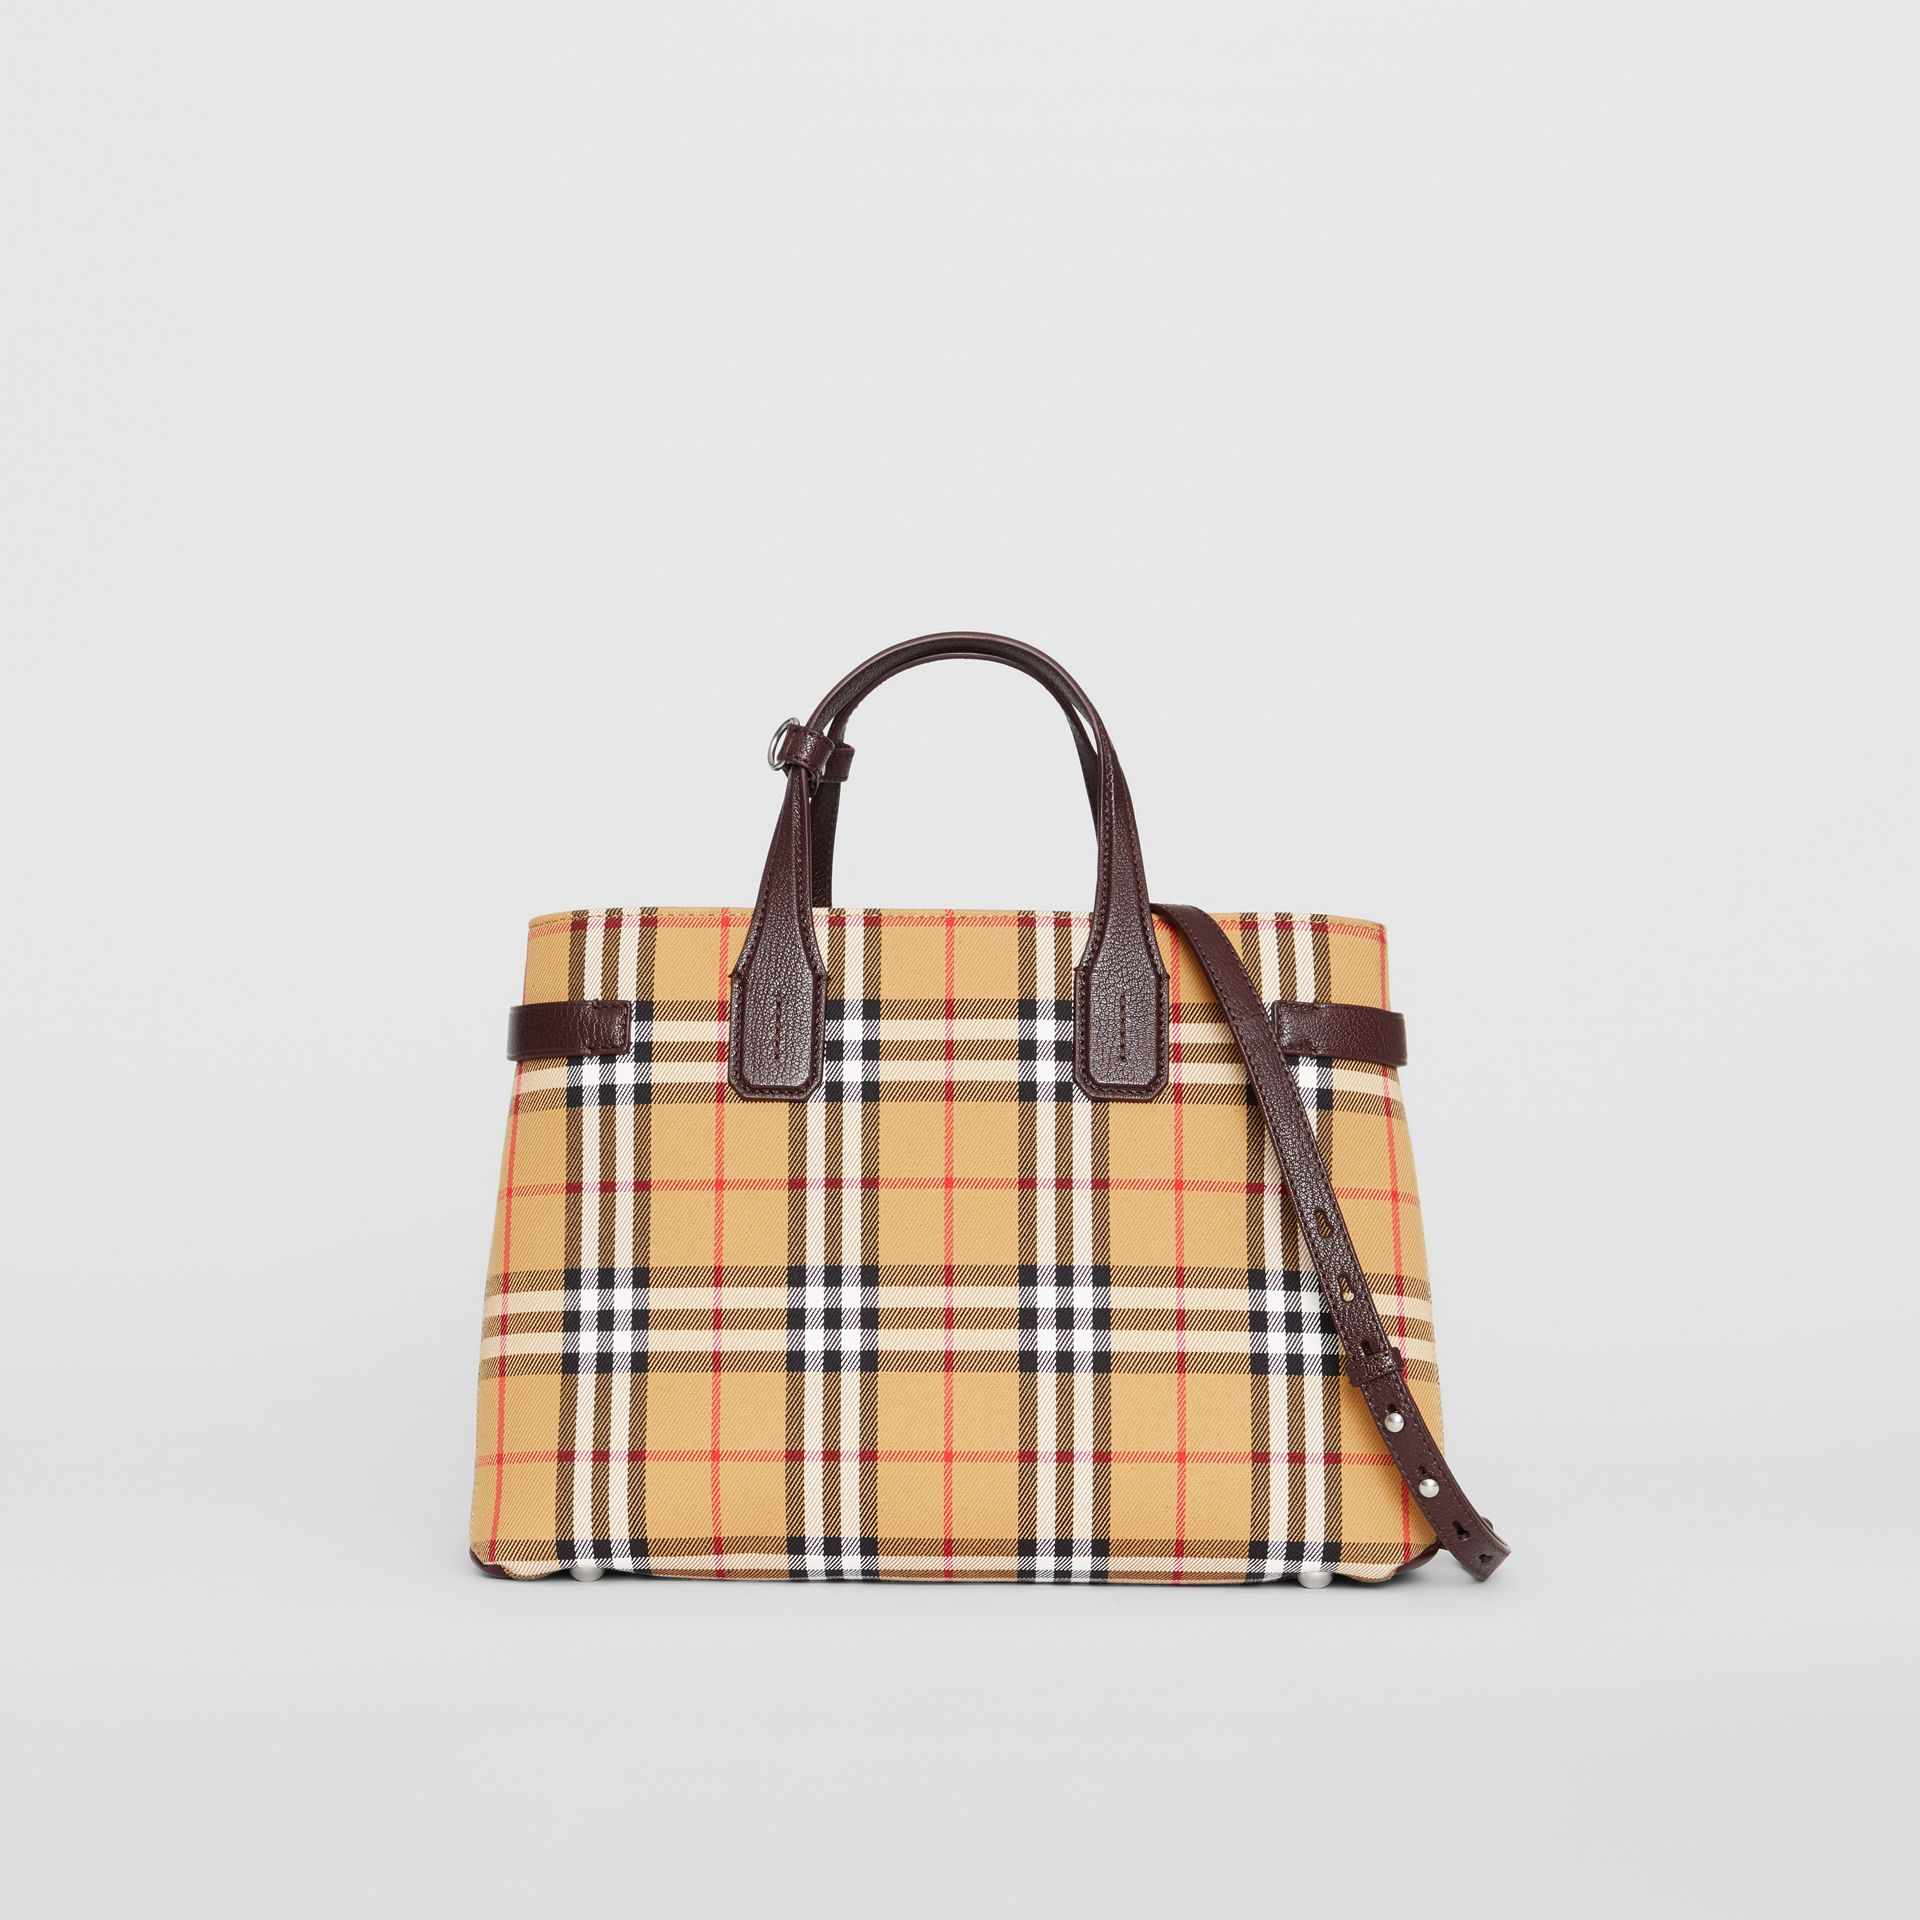 Sac The Banner moyen en cuir et Vintage check (Bordeaux Intense) - Femme | Burberry - photo de la galerie 6